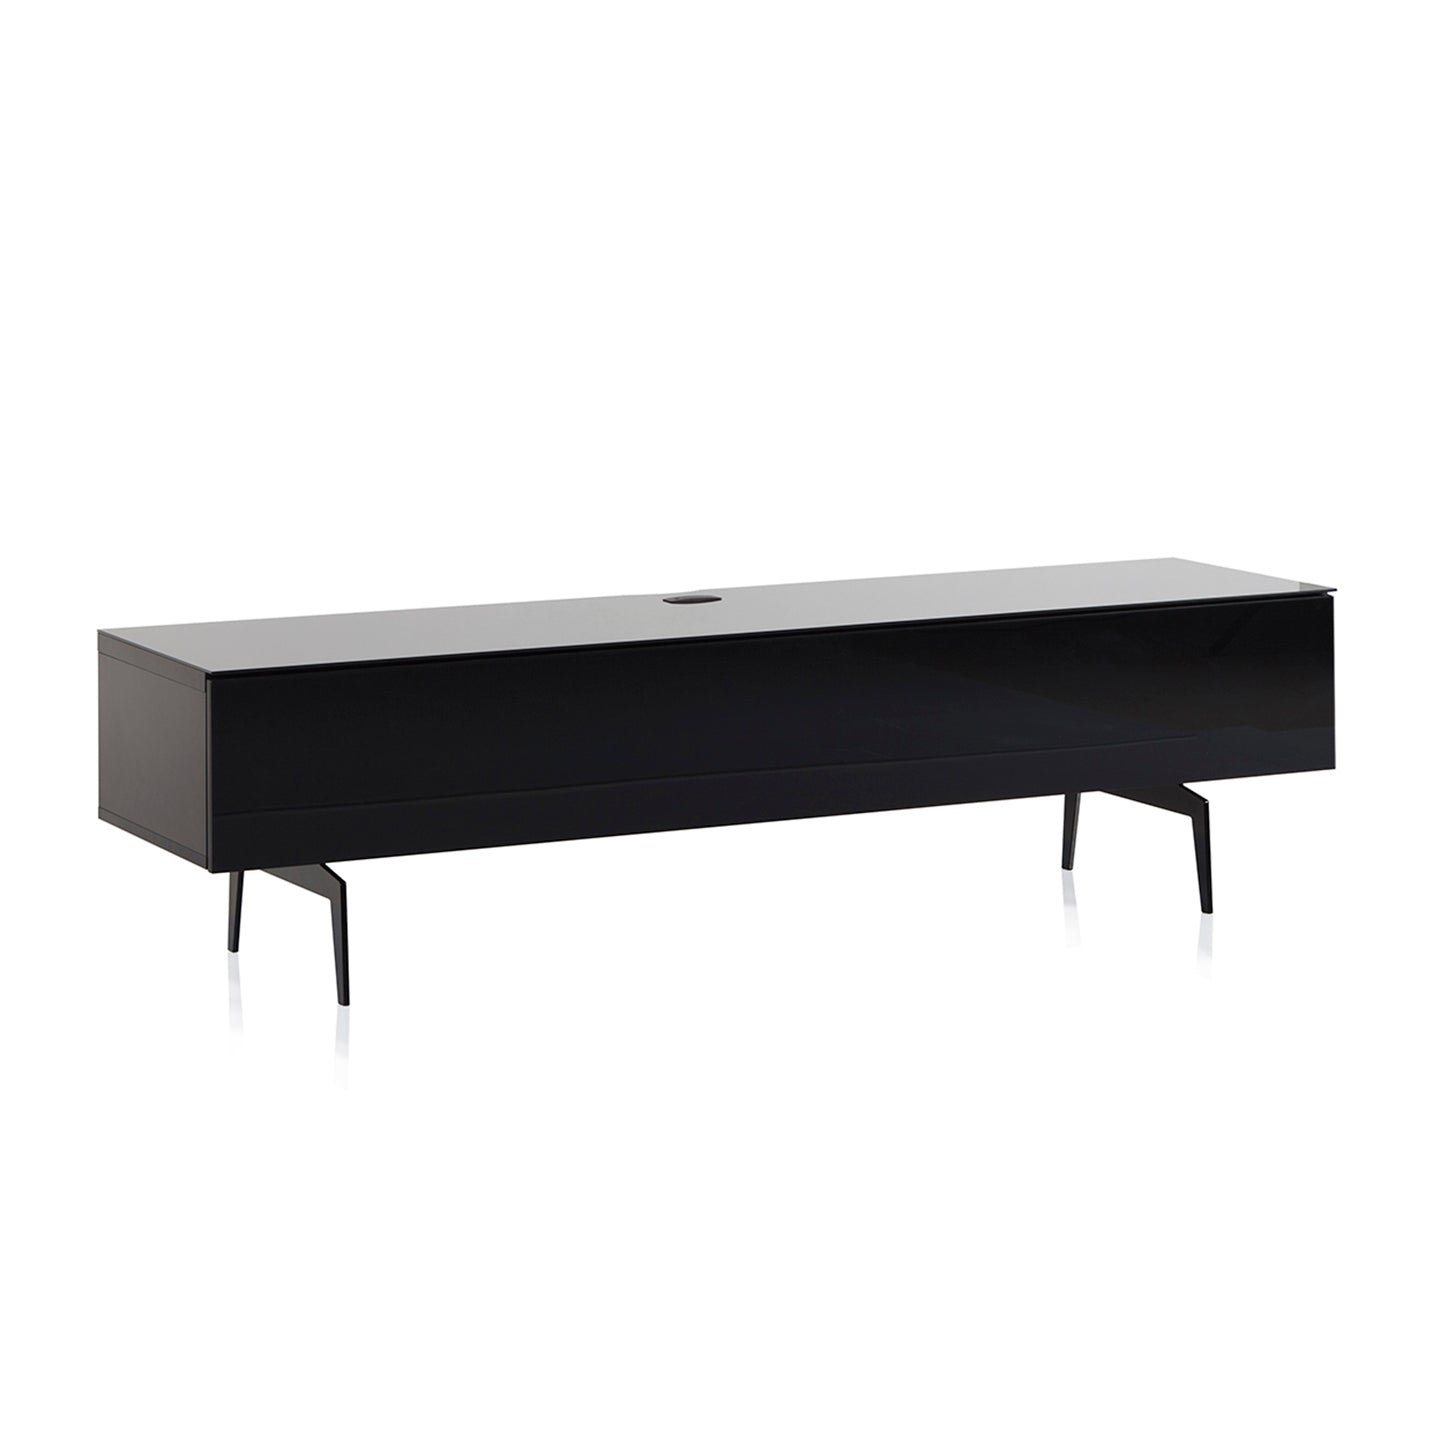 "Sonorous Studio ST360 Modern TV Stand w/ Spike Legs for TVs up to 75"" - Black / Black Wood Cover"